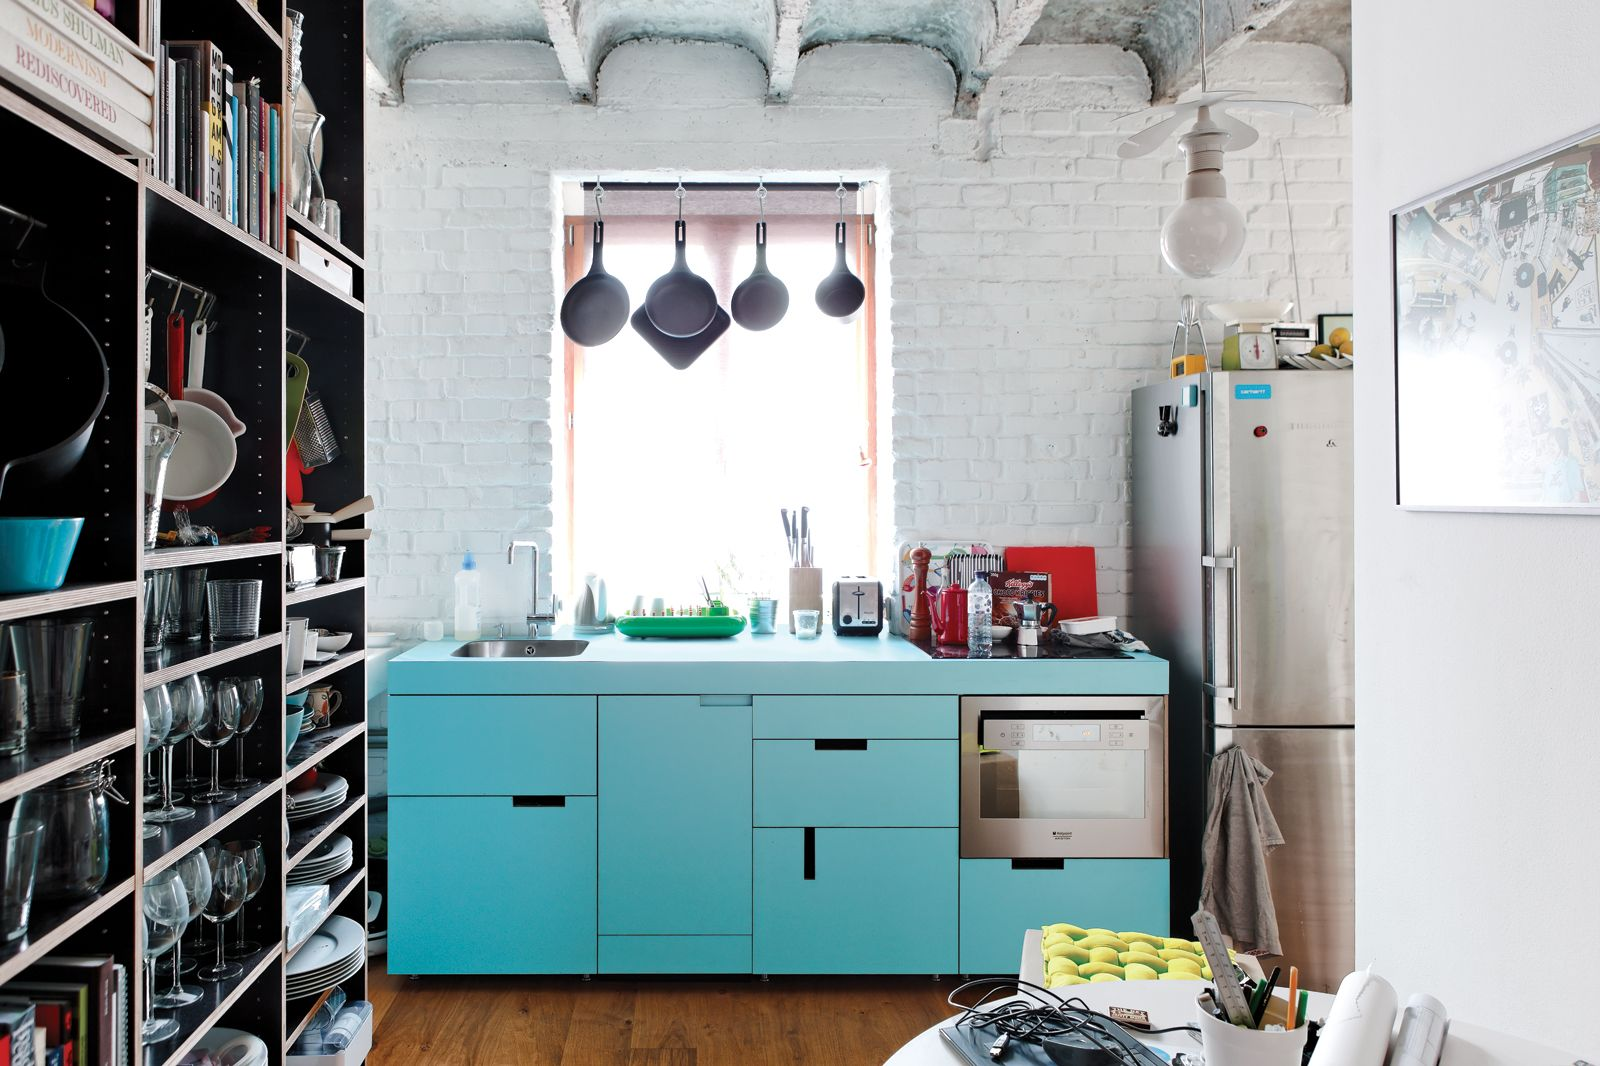 snappy, small ikea hacked kitchen | apartment interiors | Pinterest ...